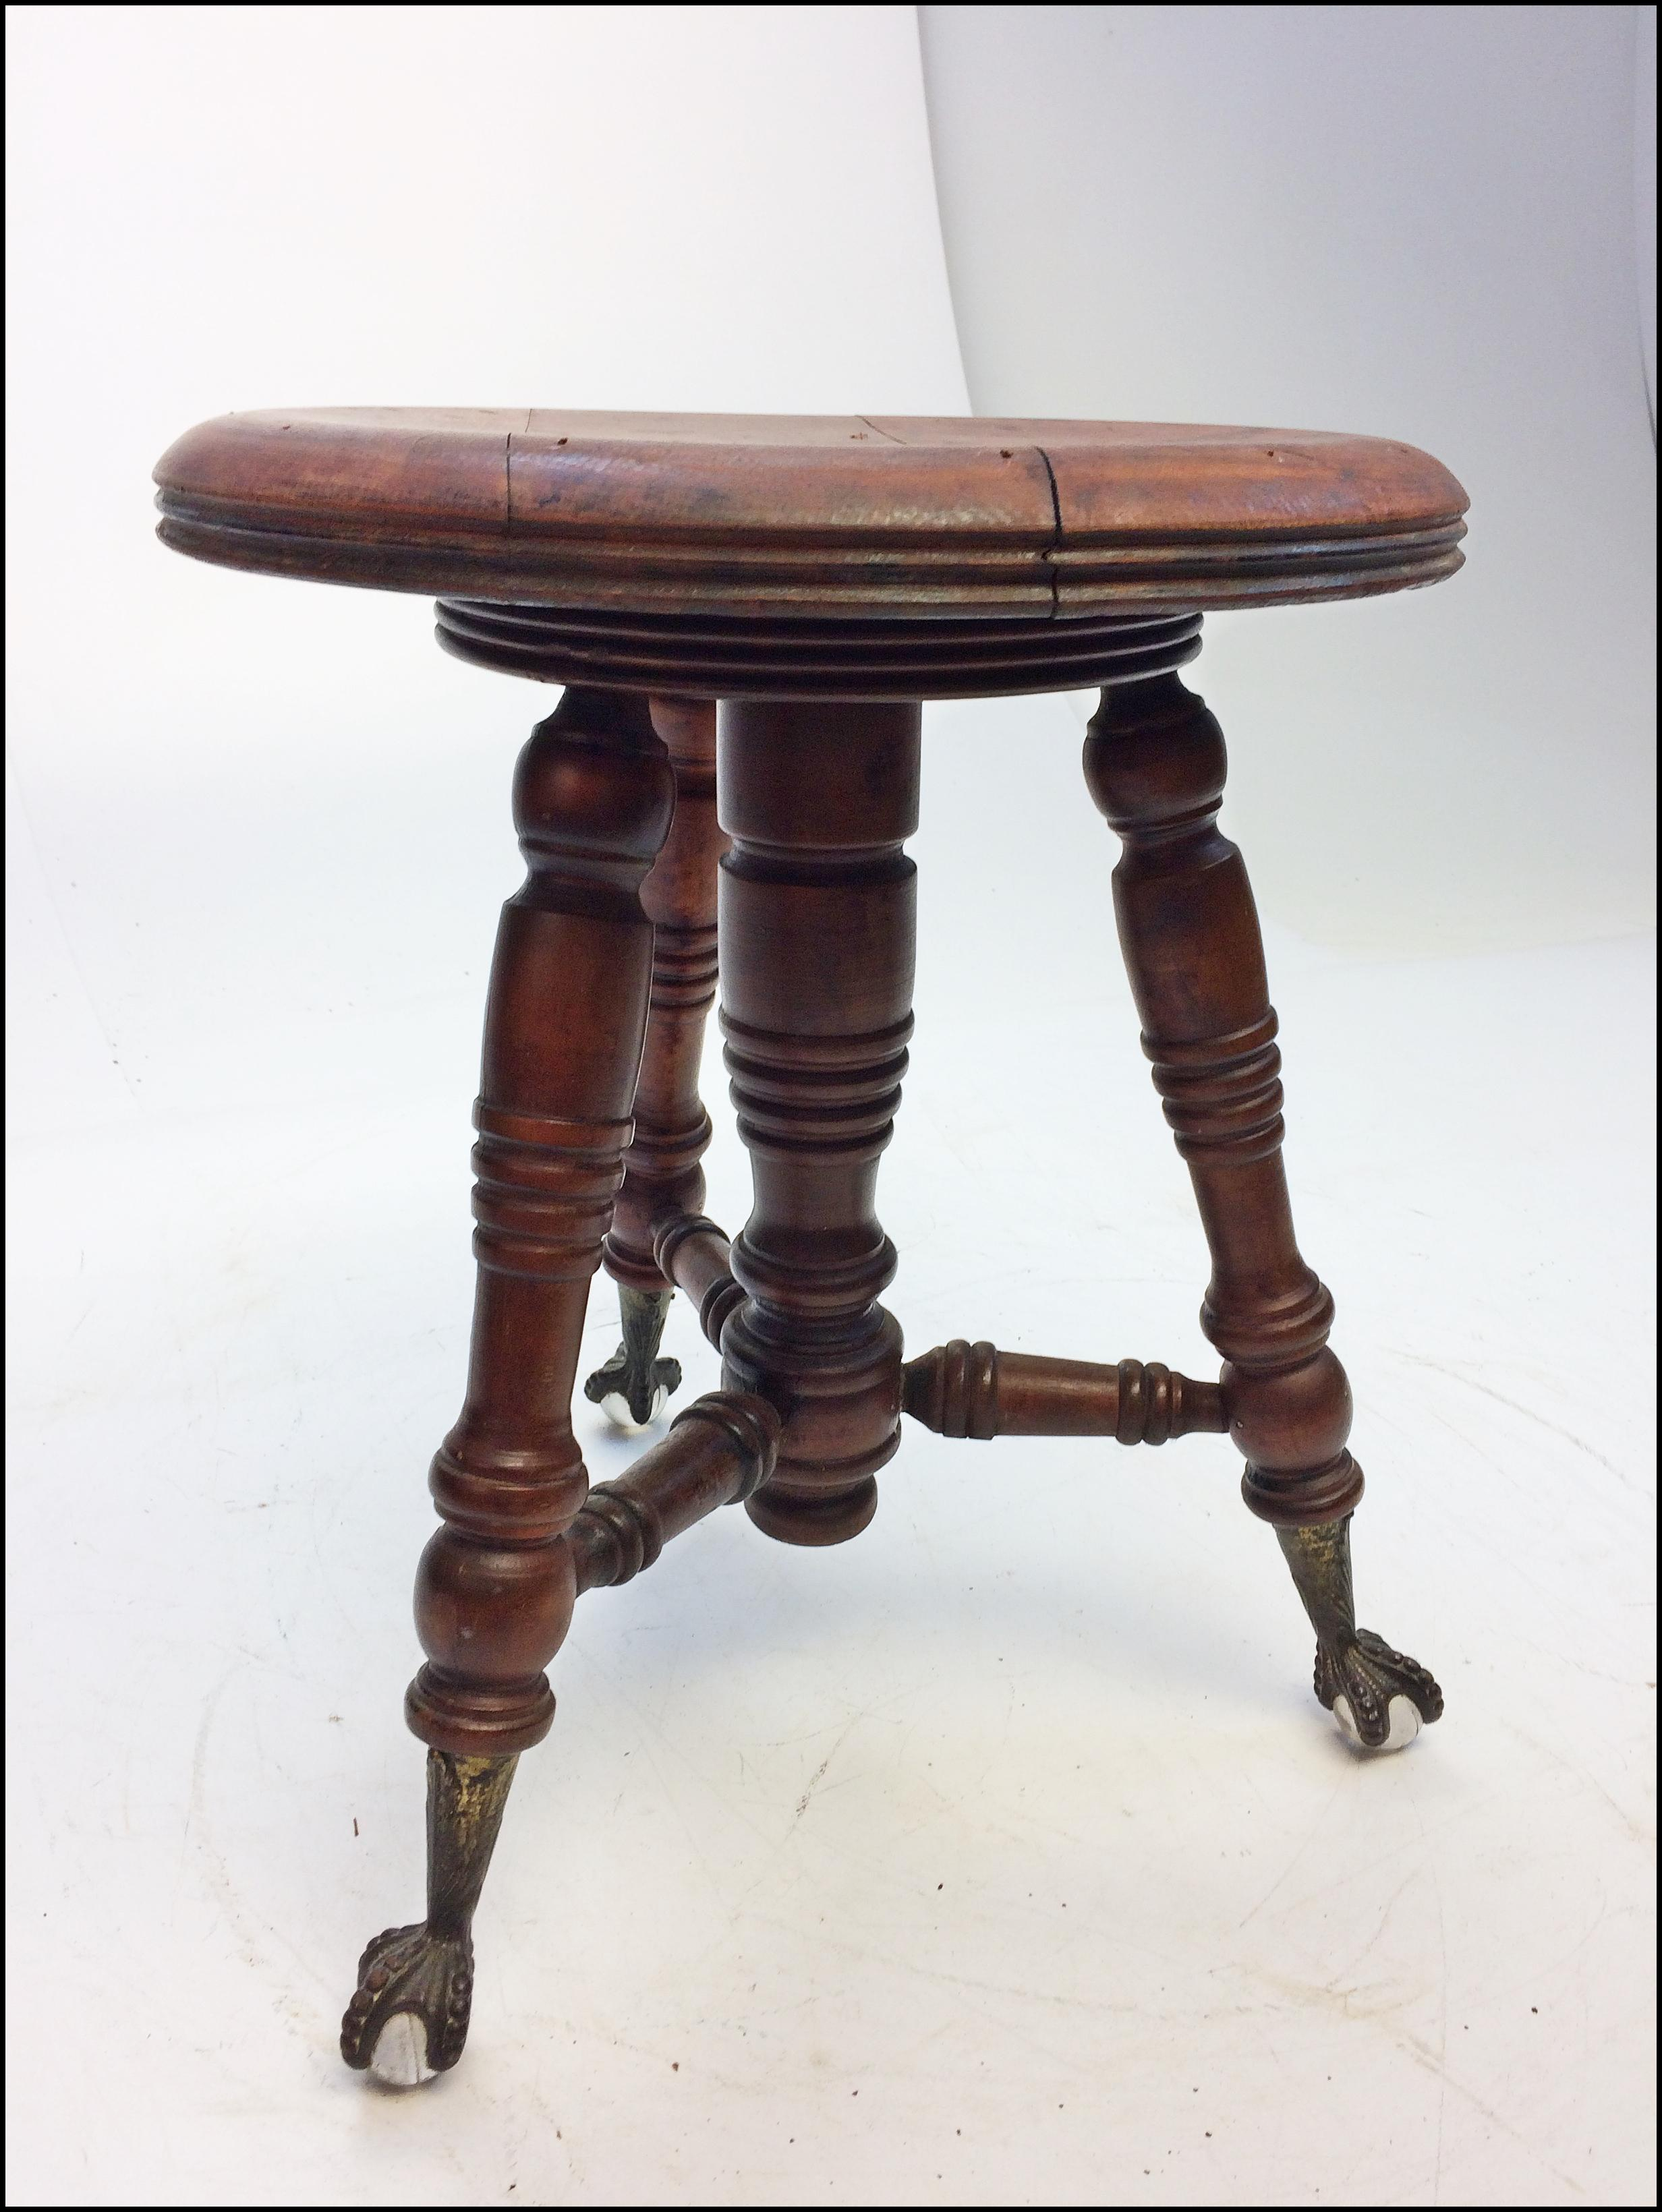 Victorian Carved Wood Piano Stool with Ball u0026 Claw Feet - Image 3 of 11  sc 1 st  Chairish & Victorian Carved Wood Piano Stool with Ball u0026 Claw Feet | Chairish islam-shia.org